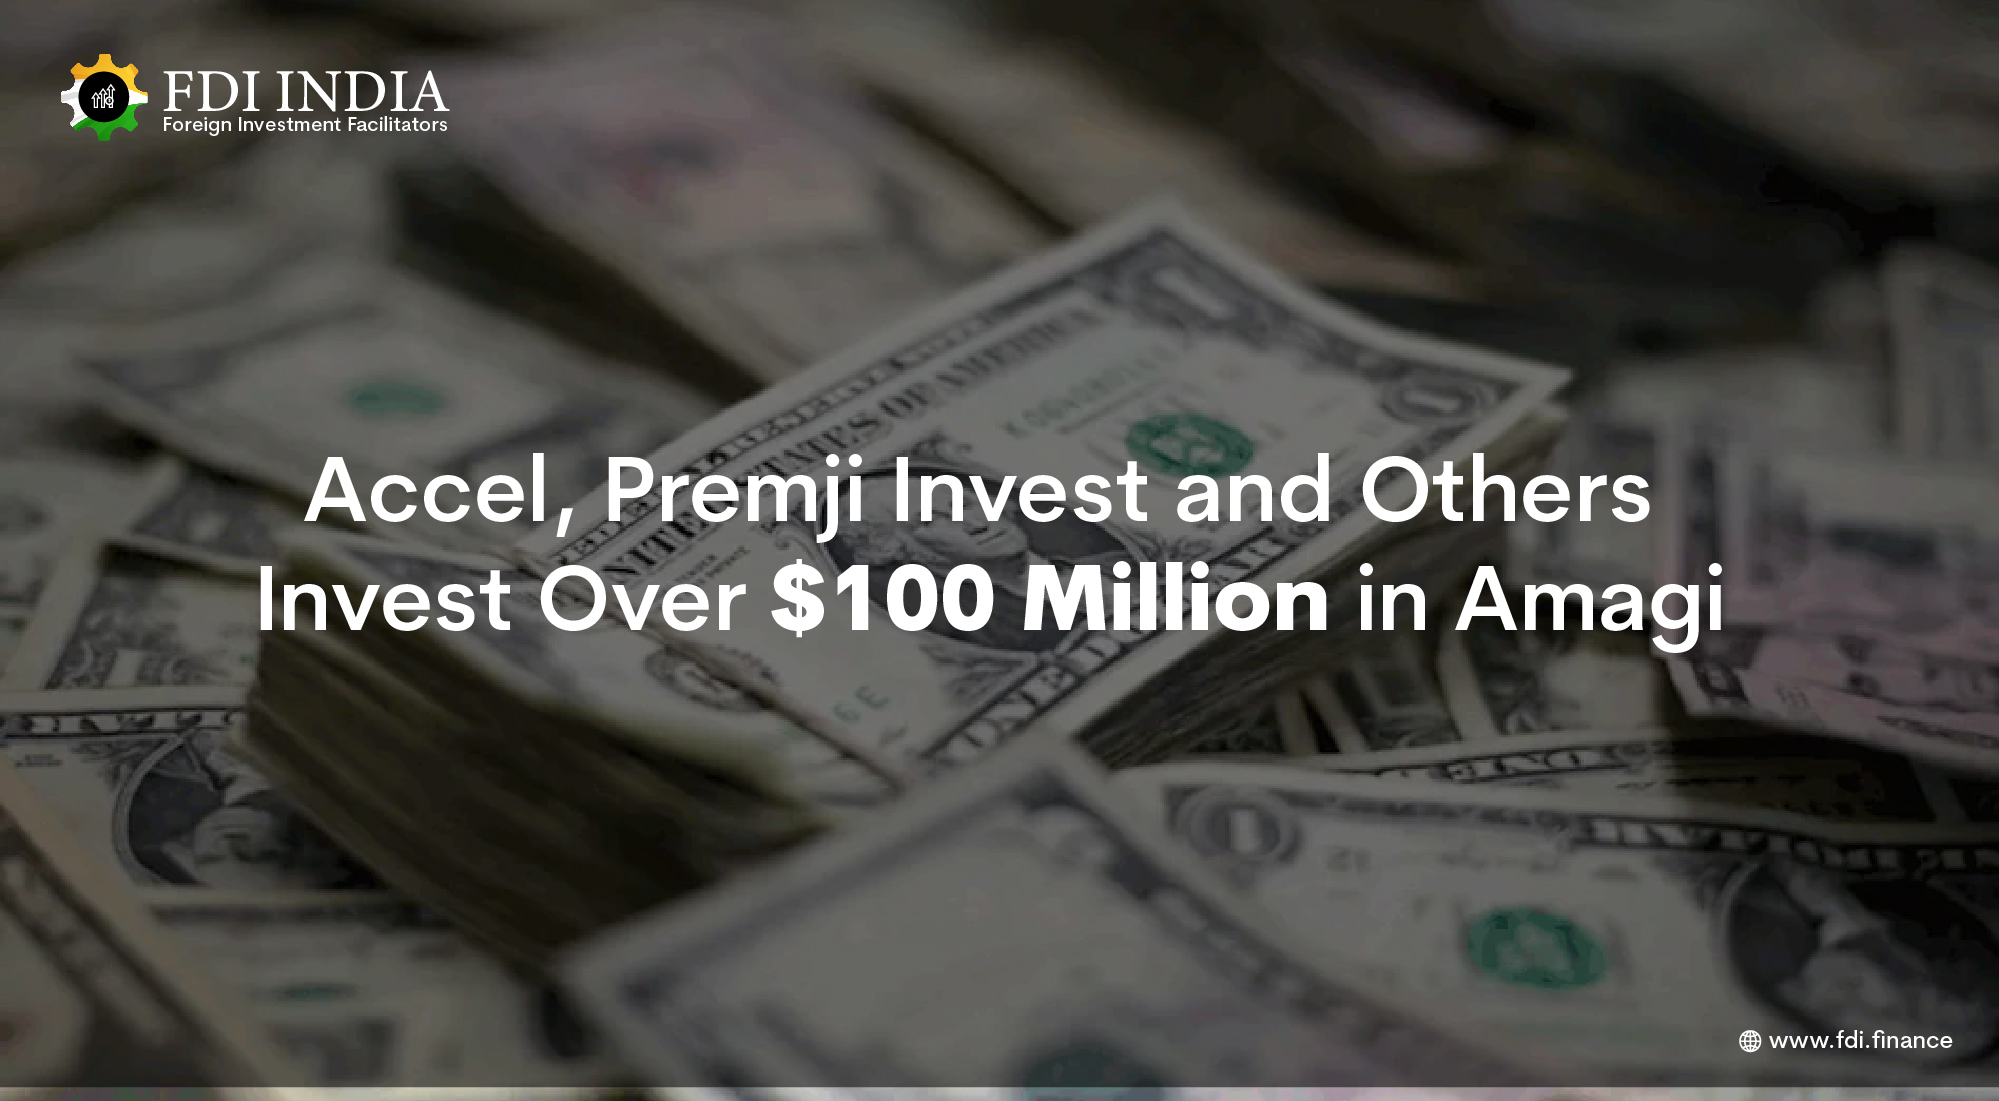 Accel, Premji Invest and Others Invest Over $100 Million in Amagi